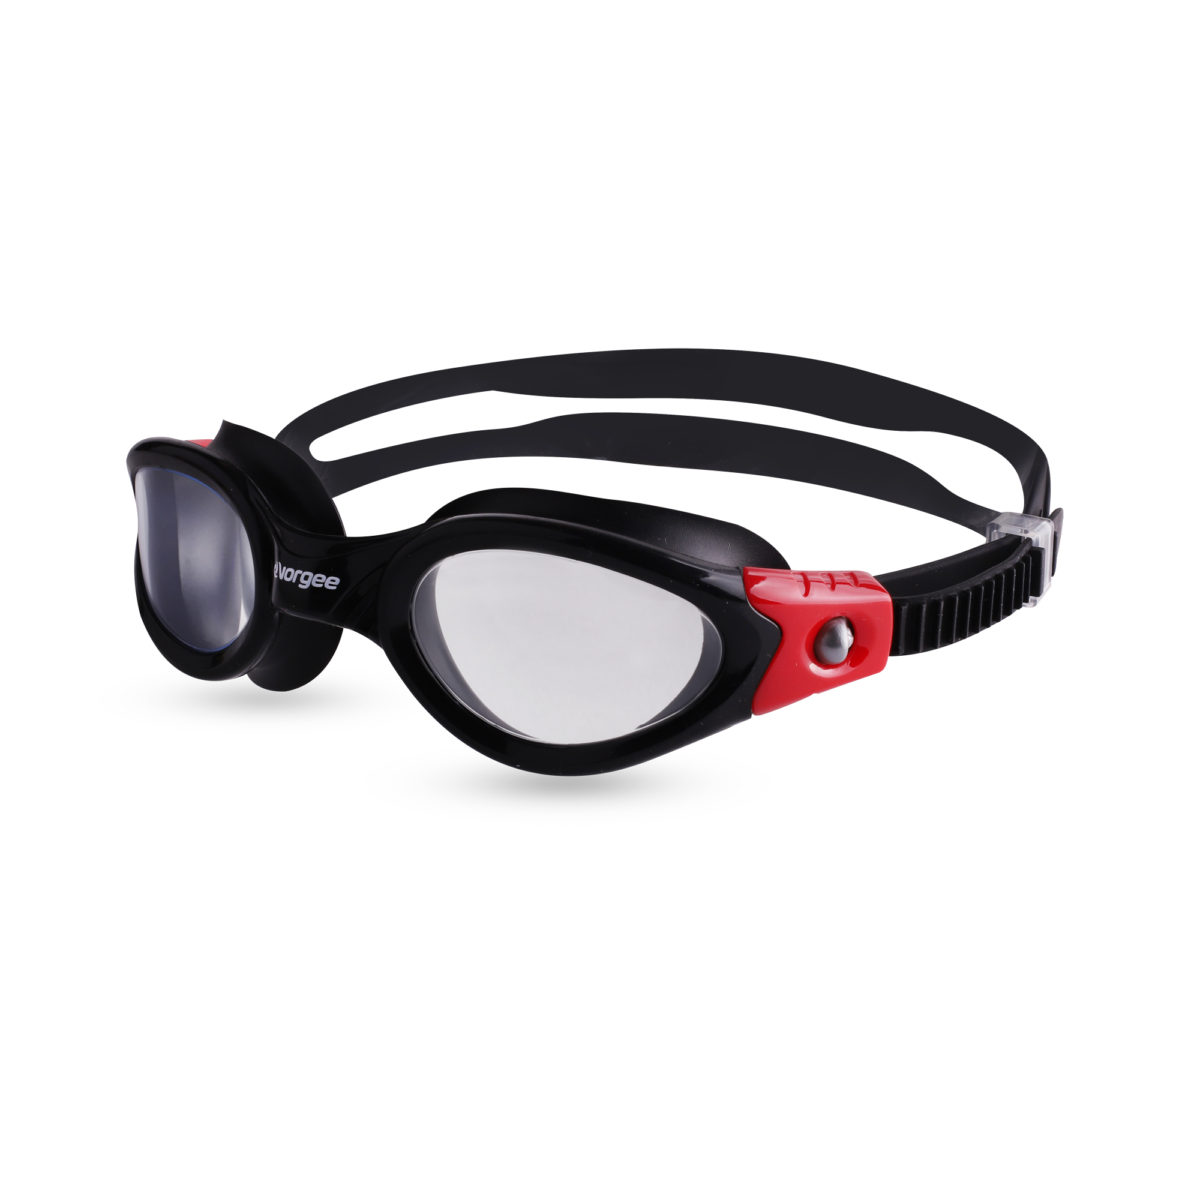 Vortech Clear - black & red